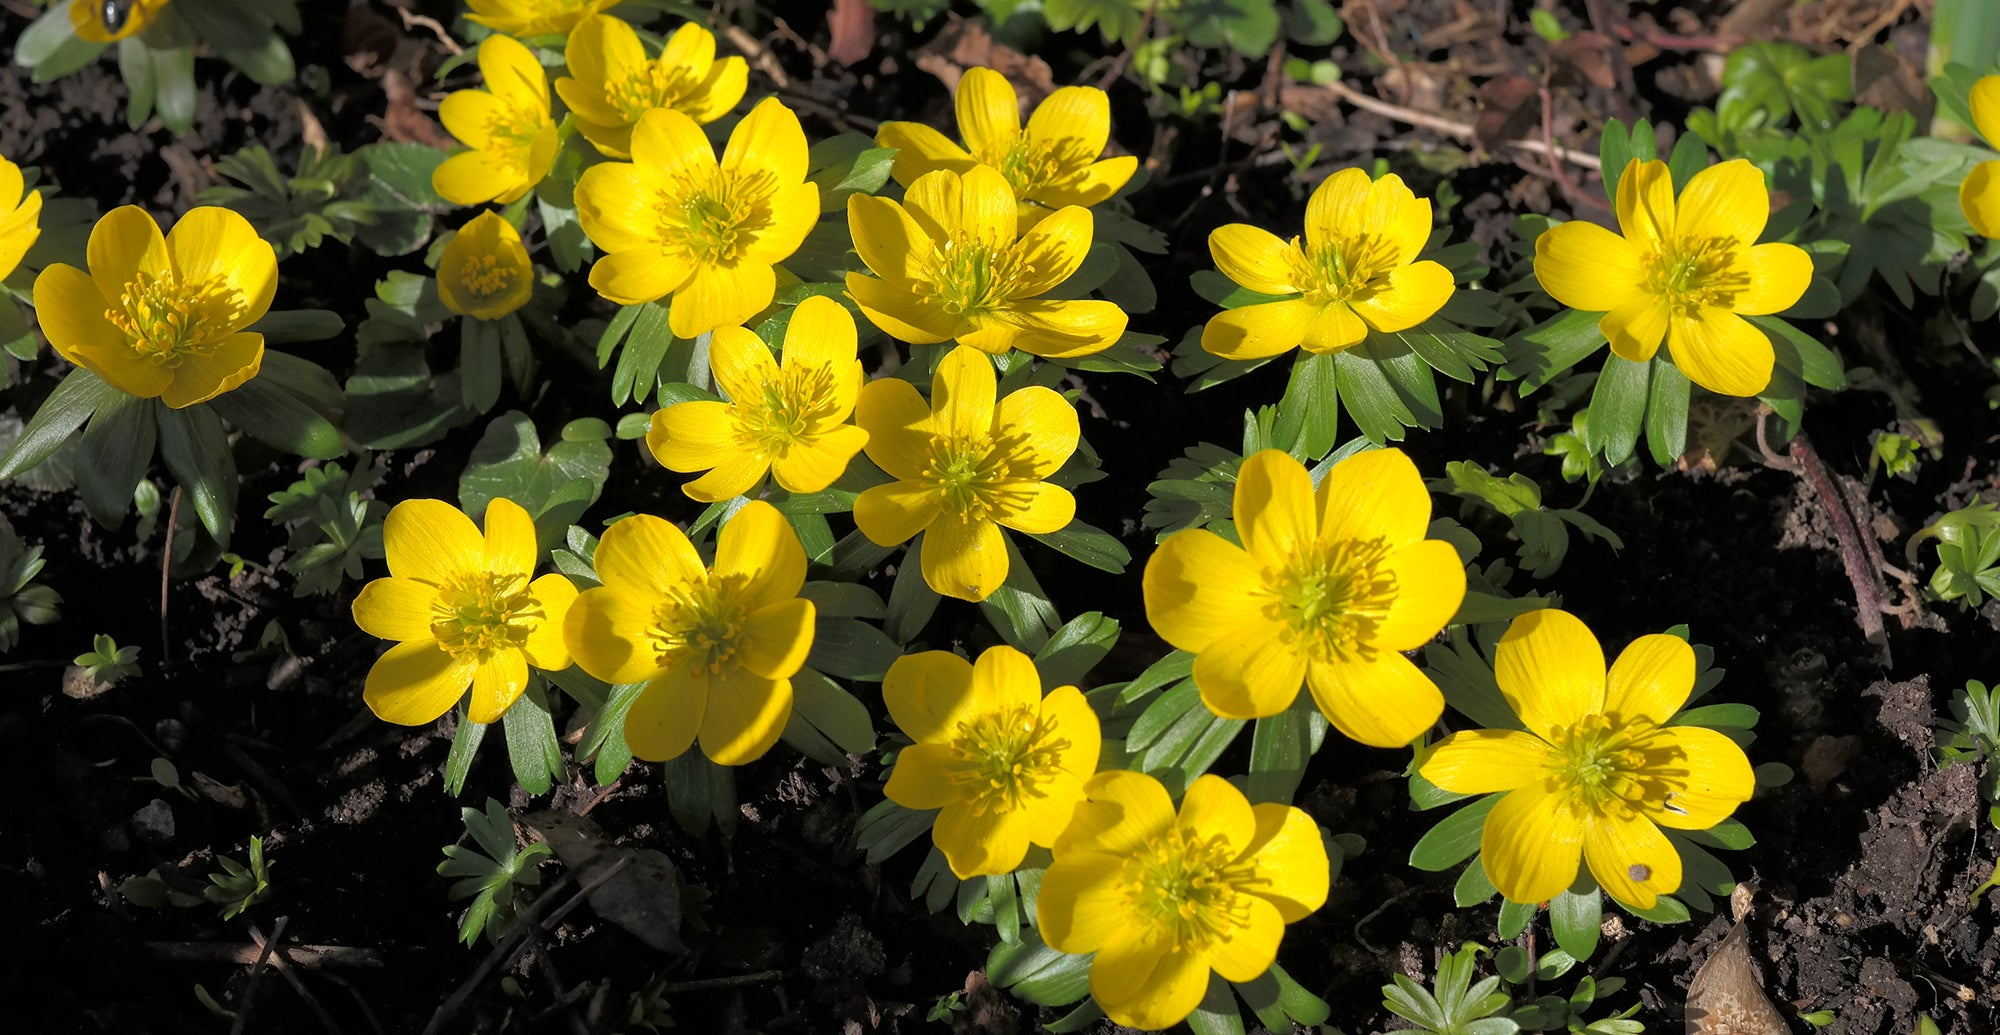 How to grow eranthis - winter aconite?